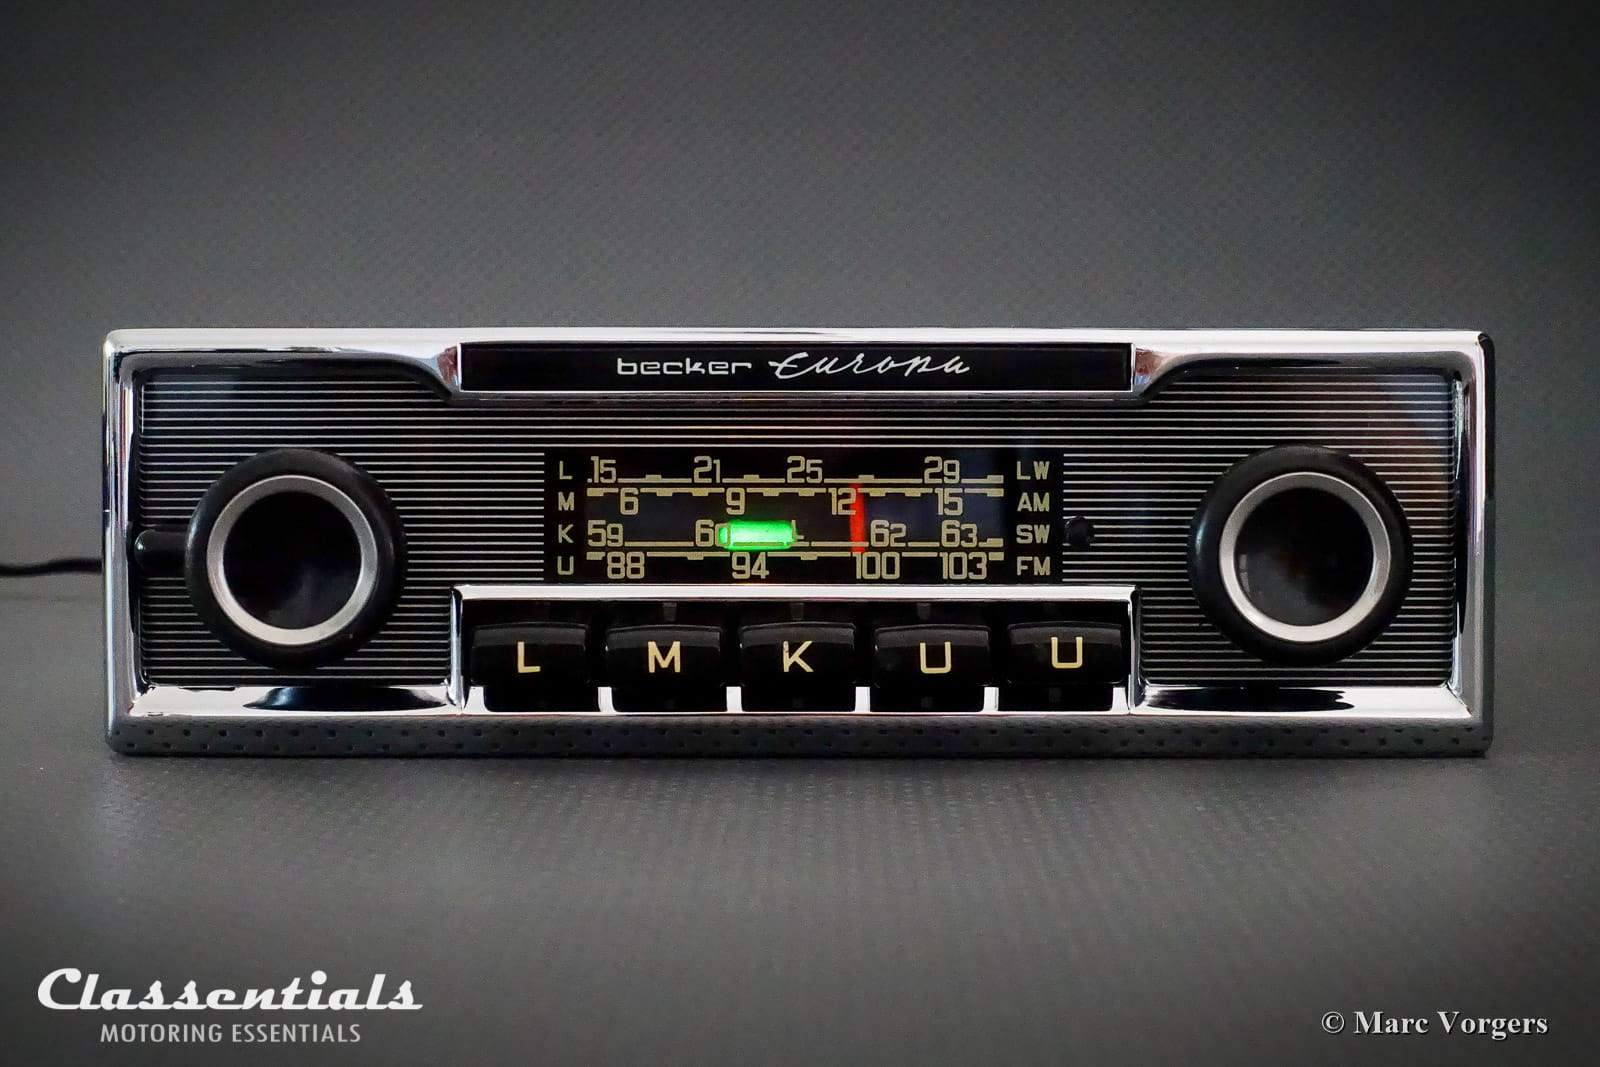 Becker EUROPA LMKU 1970s Vintage Original High-End Classic Car Auto Radio,  Mercedes-Benz and Other Exclusive Cars 1968 -1978 MP3 and Bluetooth Ready